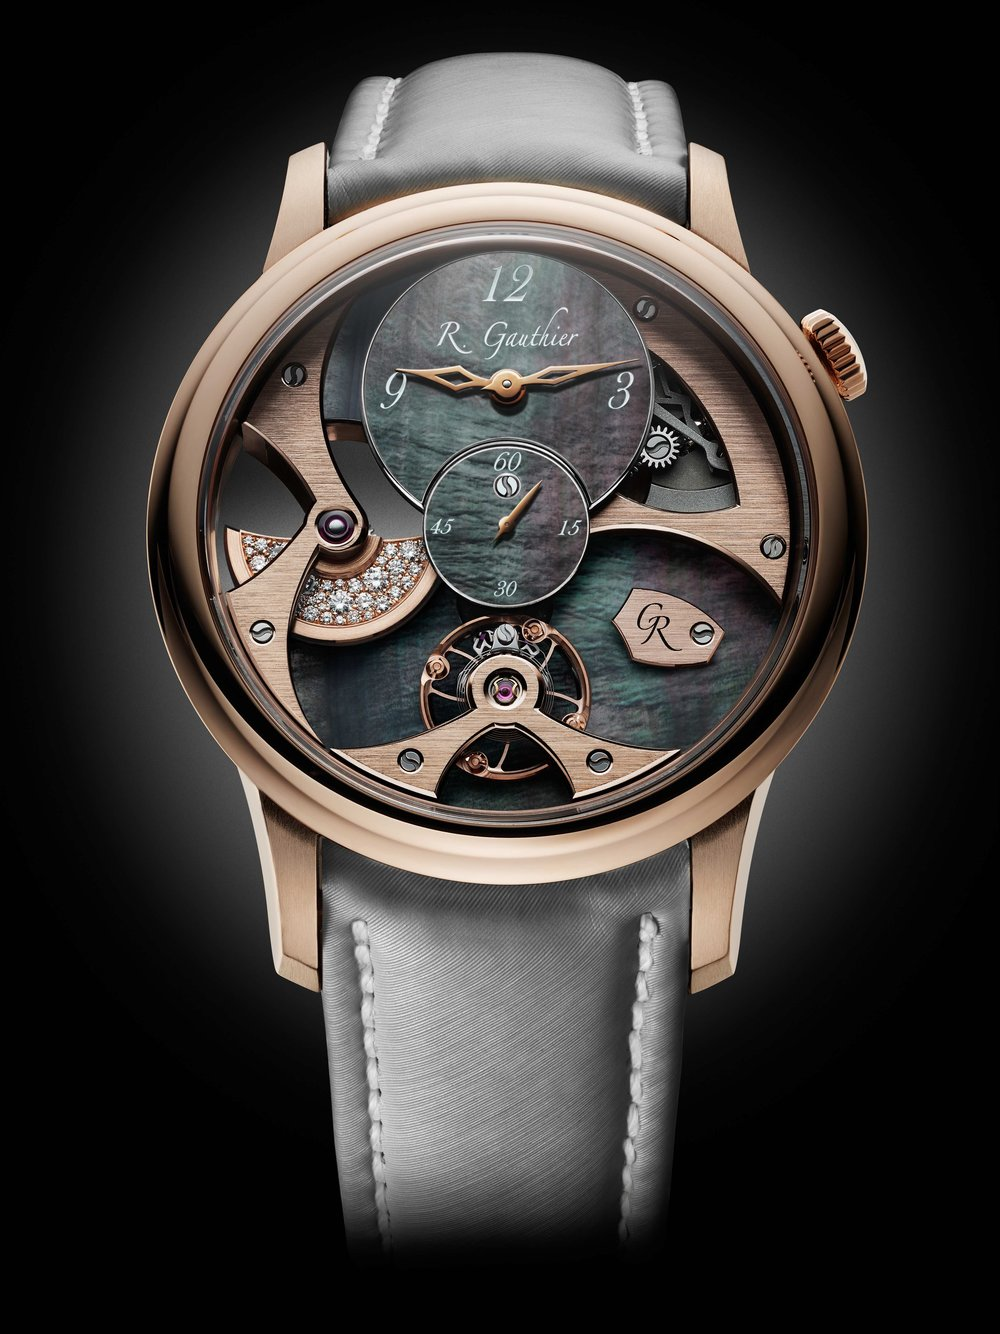 Romain_Gauthier_Insight_Micro-Rotor_Lady_1_red gold_black_dial.jpg